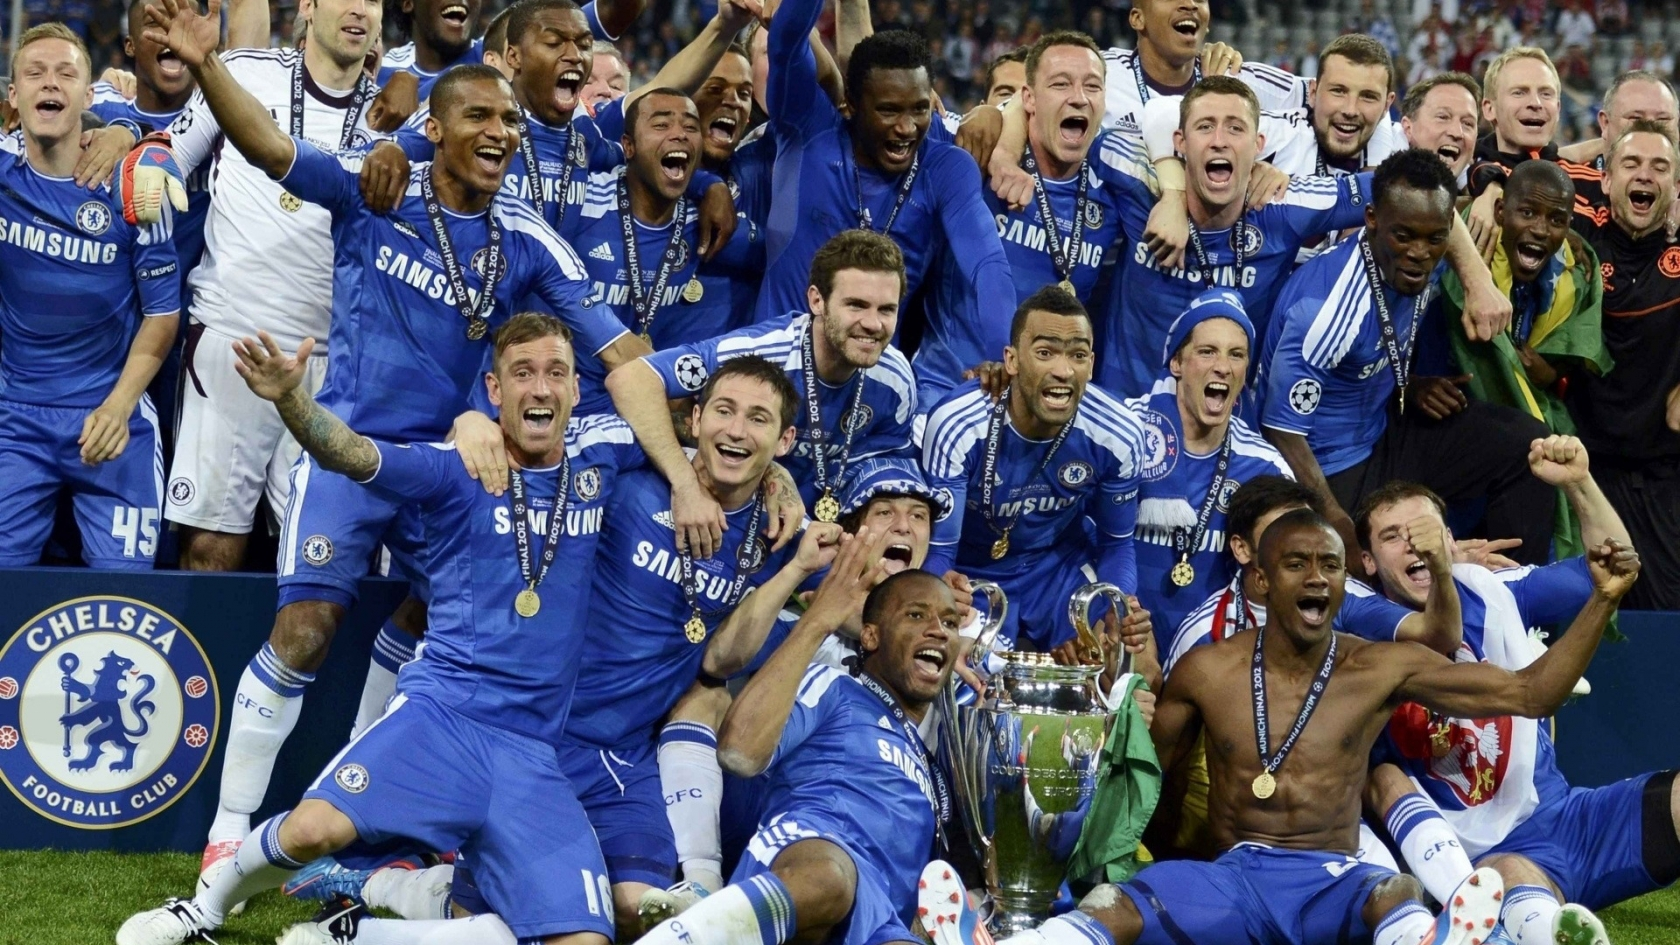 Chelsea Celebrating for 1680 x 945 HDTV resolution